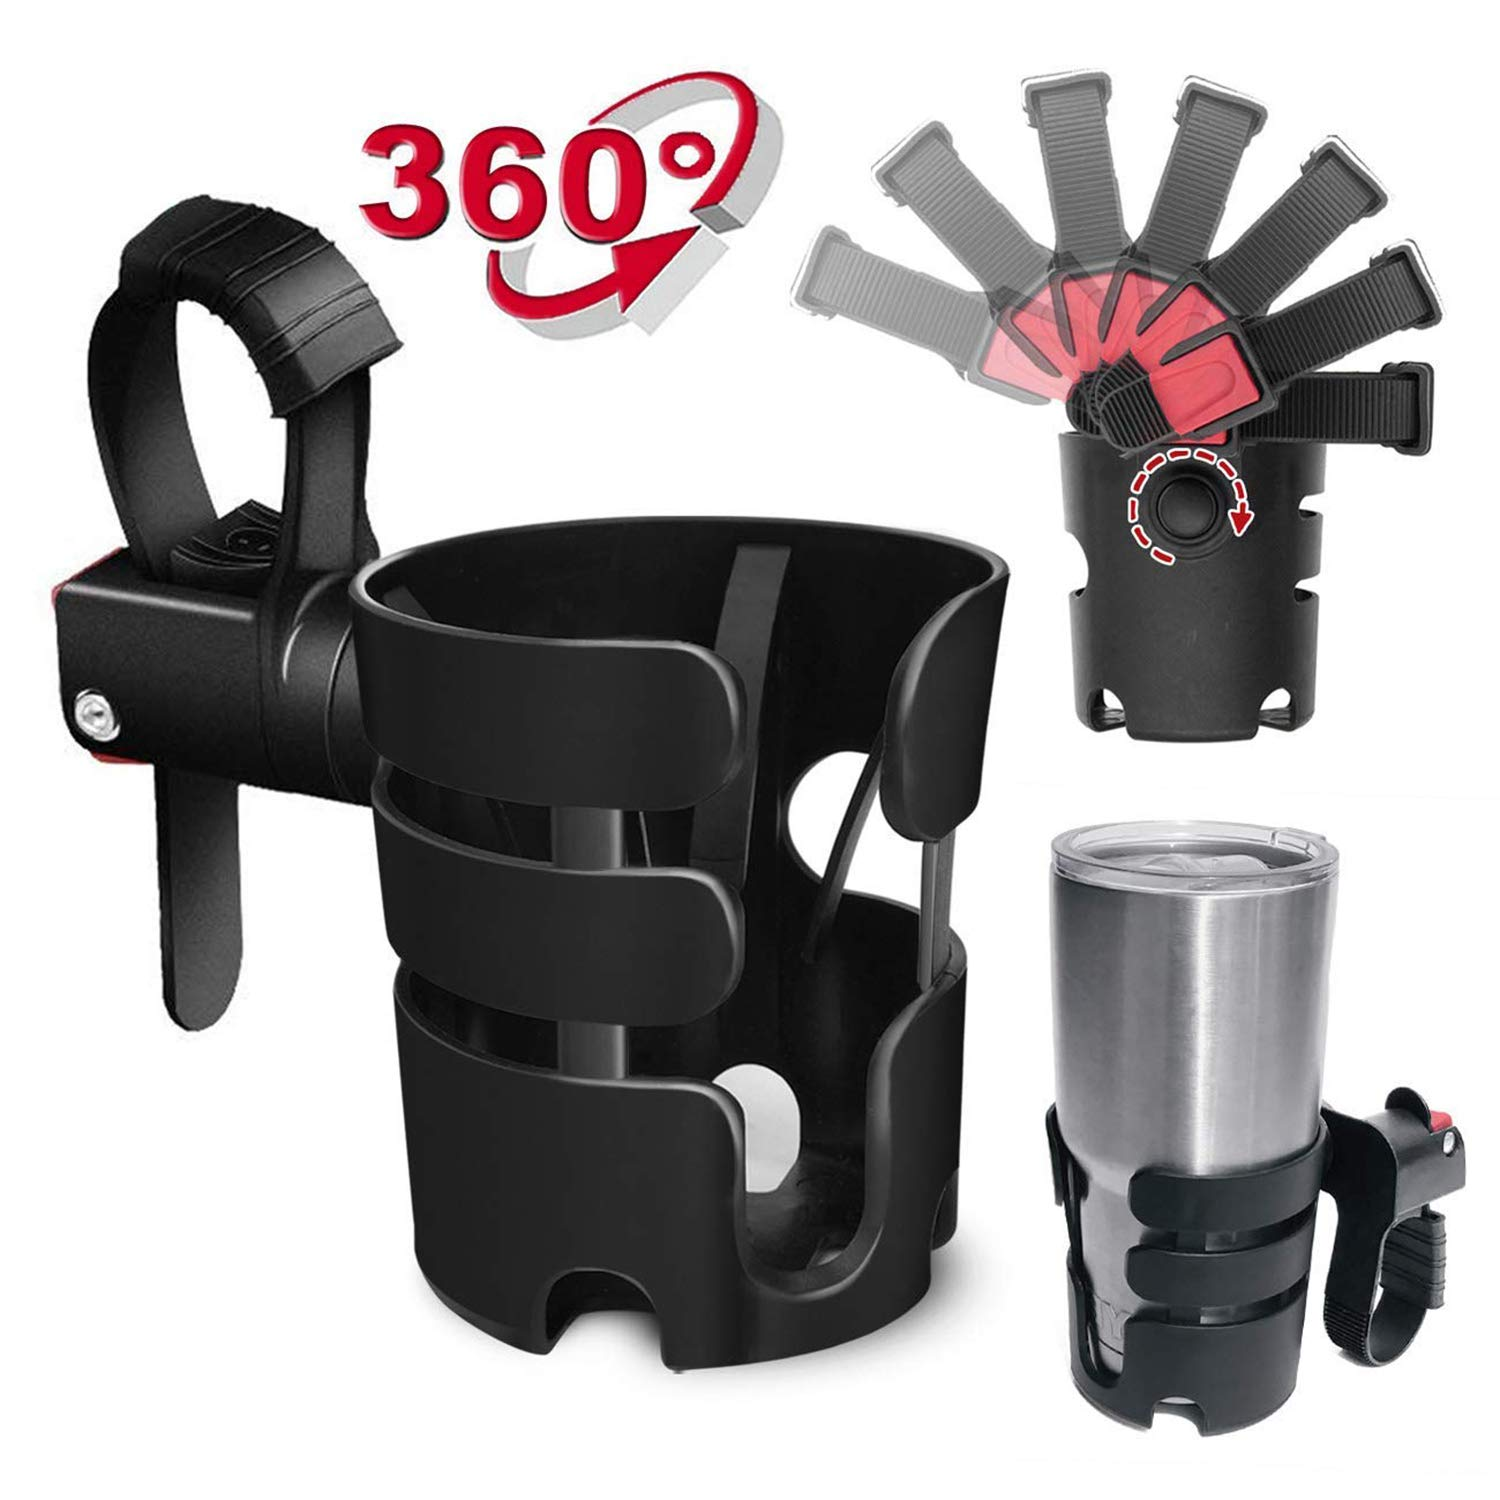 Universal Stroller Cup Holder, Fits Most Strollers/Wheelchairs/Rollators/Walkers/Bicycles/Carriage Accessory XaoRy